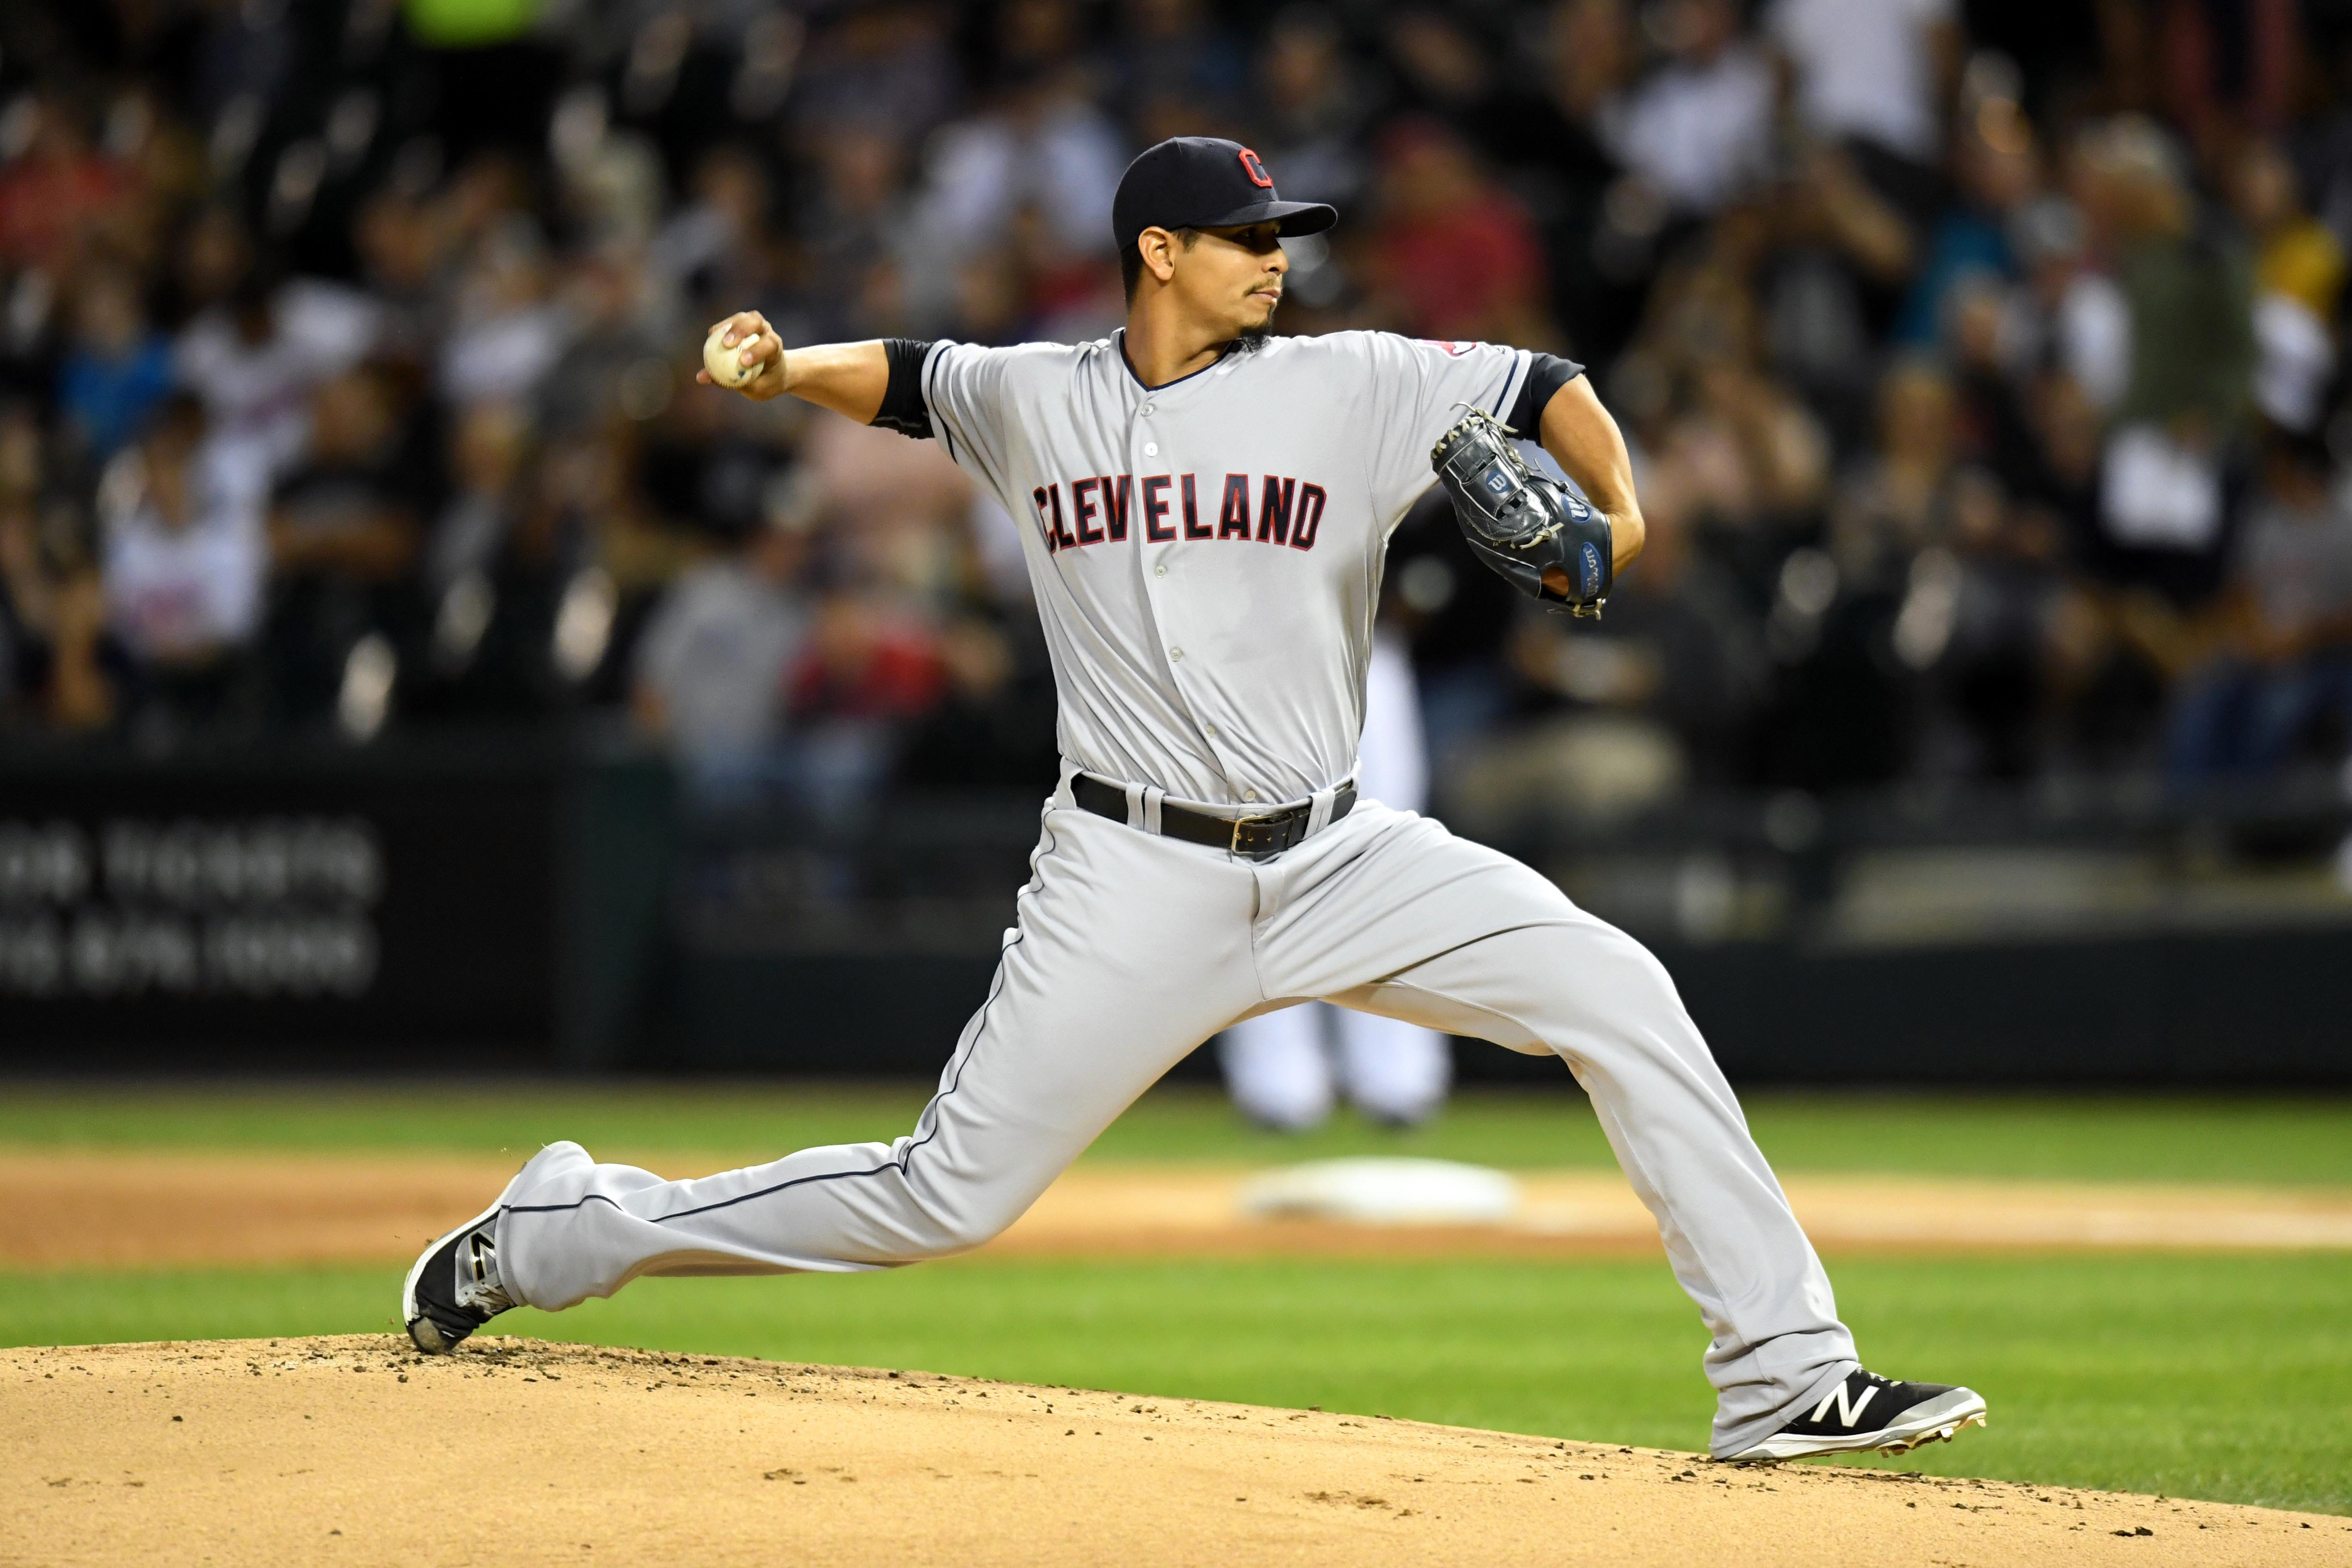 9538426-mlb-cleveland-indians-at-chicago-white-sox